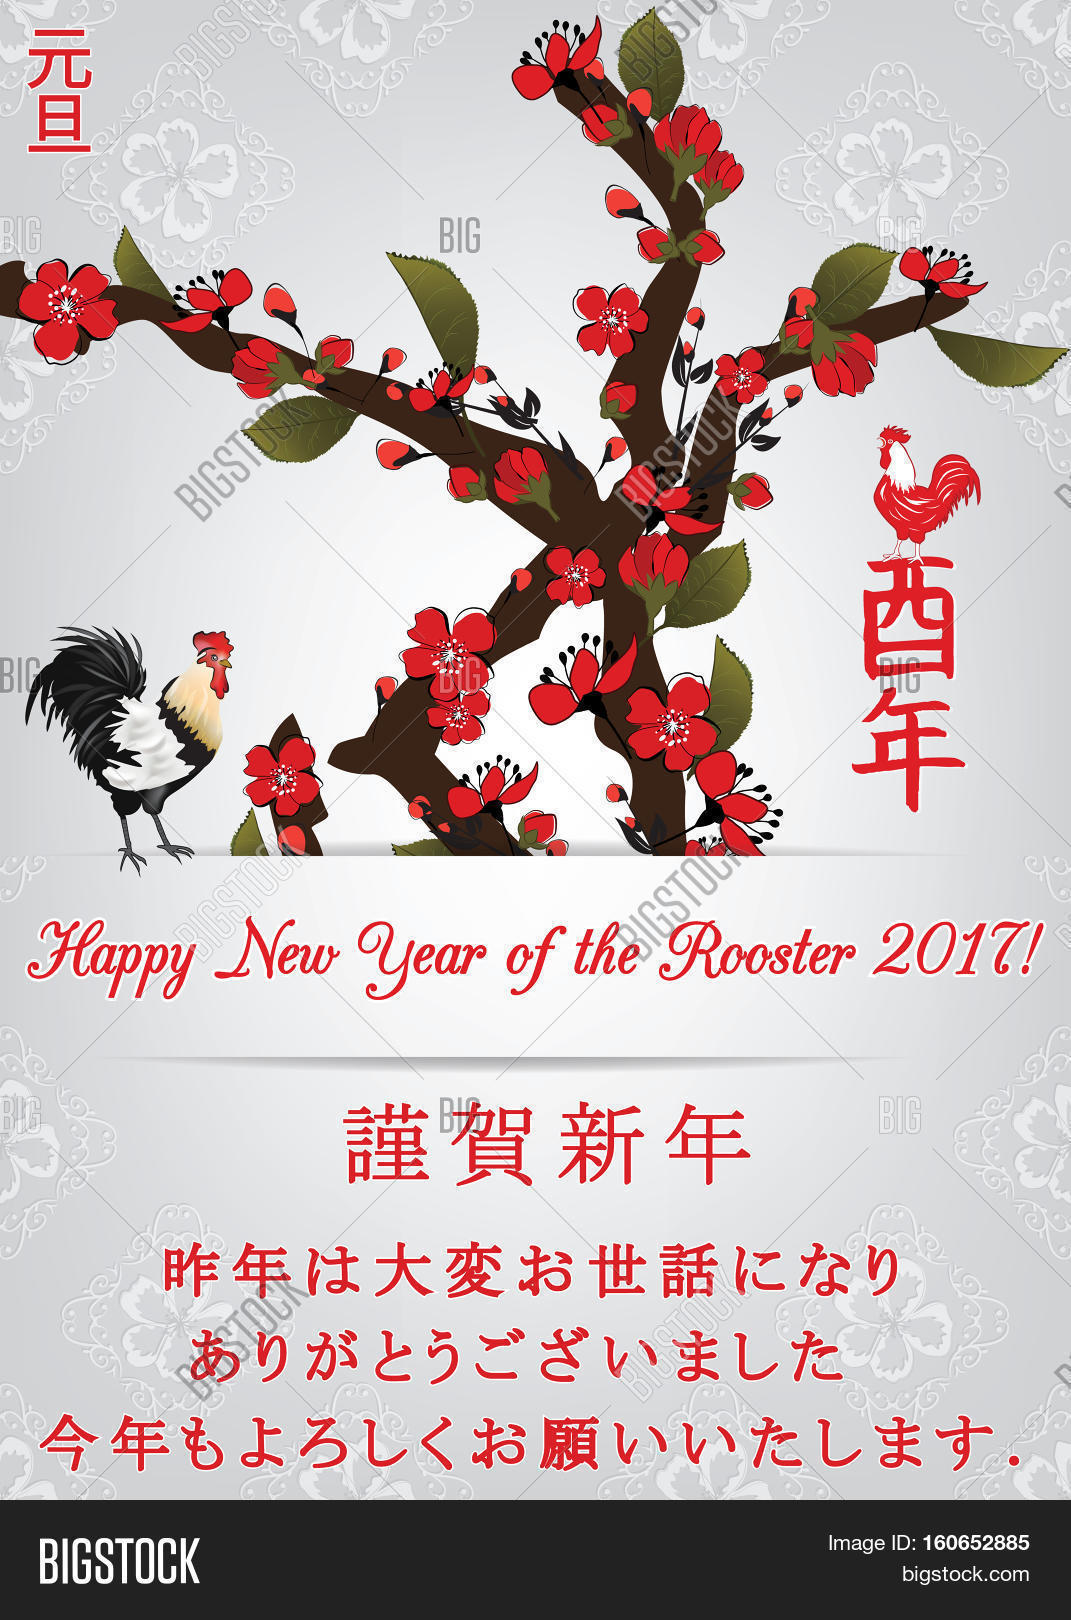 Japanese new year image photo free trial bigstock japanese new year greeting card for the year of the rooster text happy m4hsunfo